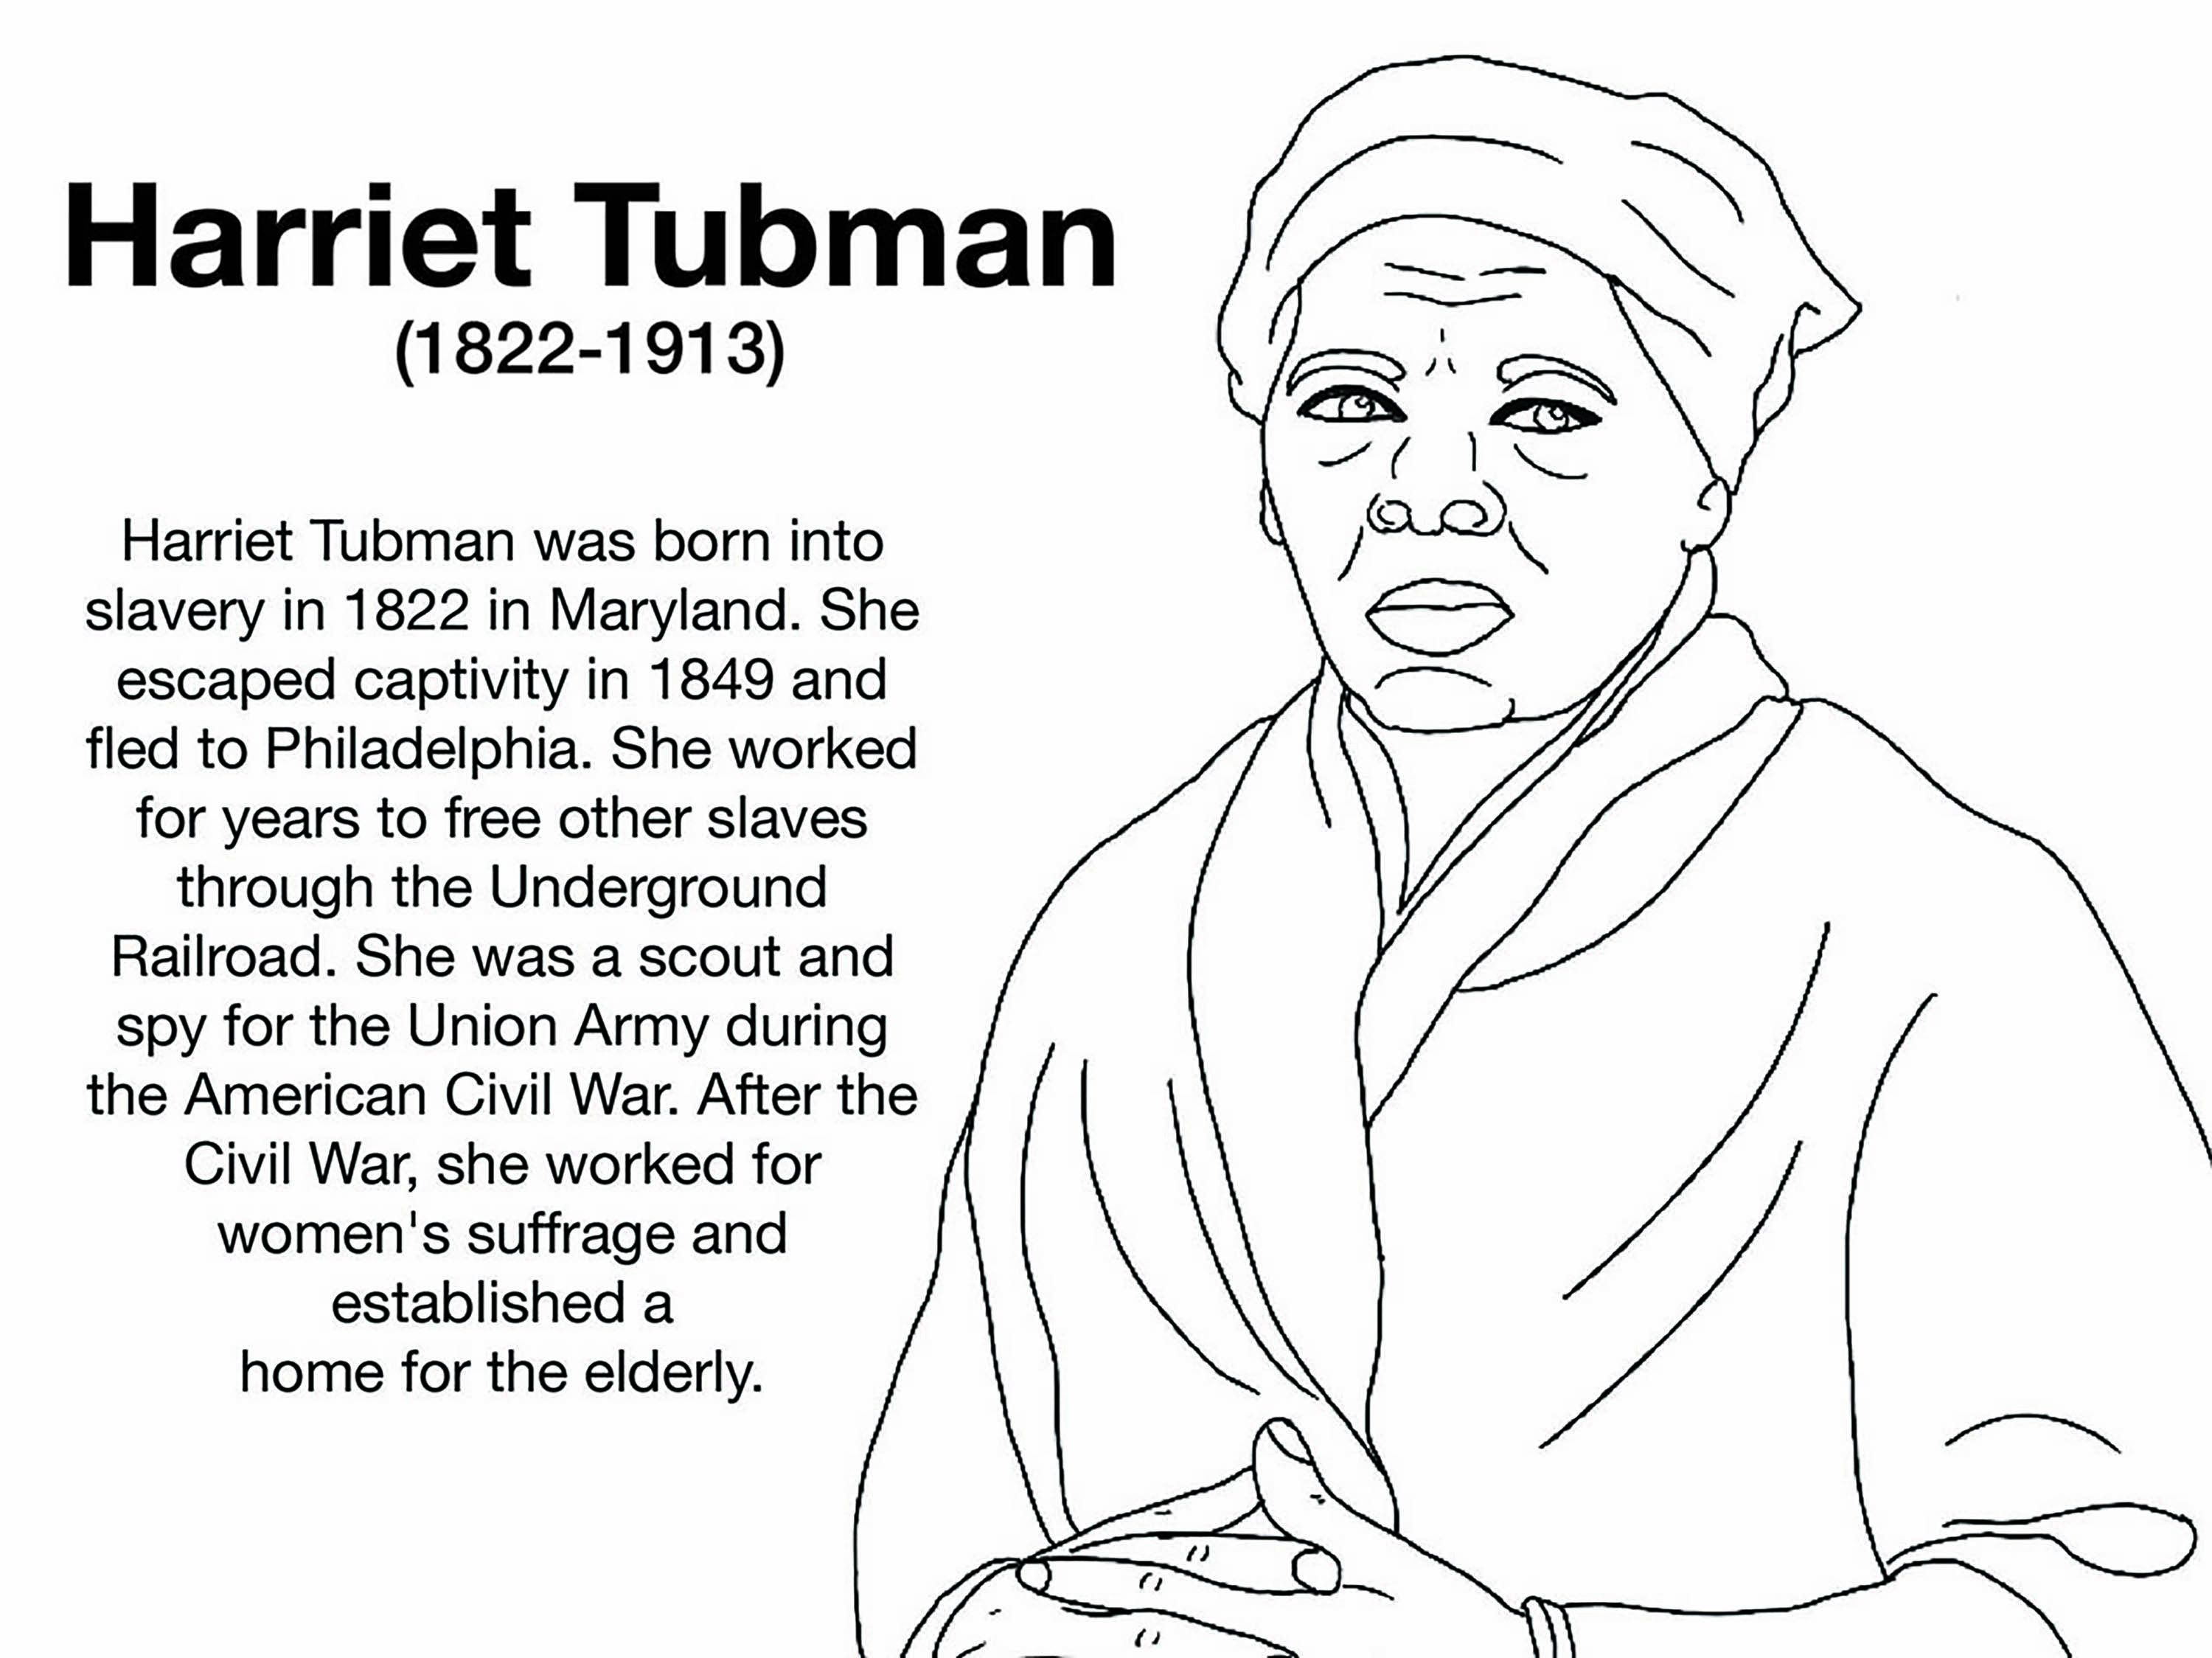 Free Sample Almost Harriet Tubman Women Worth Etsy In 2021 Harriet Tubman Harriet Tubman Pictures Black History Month Printables